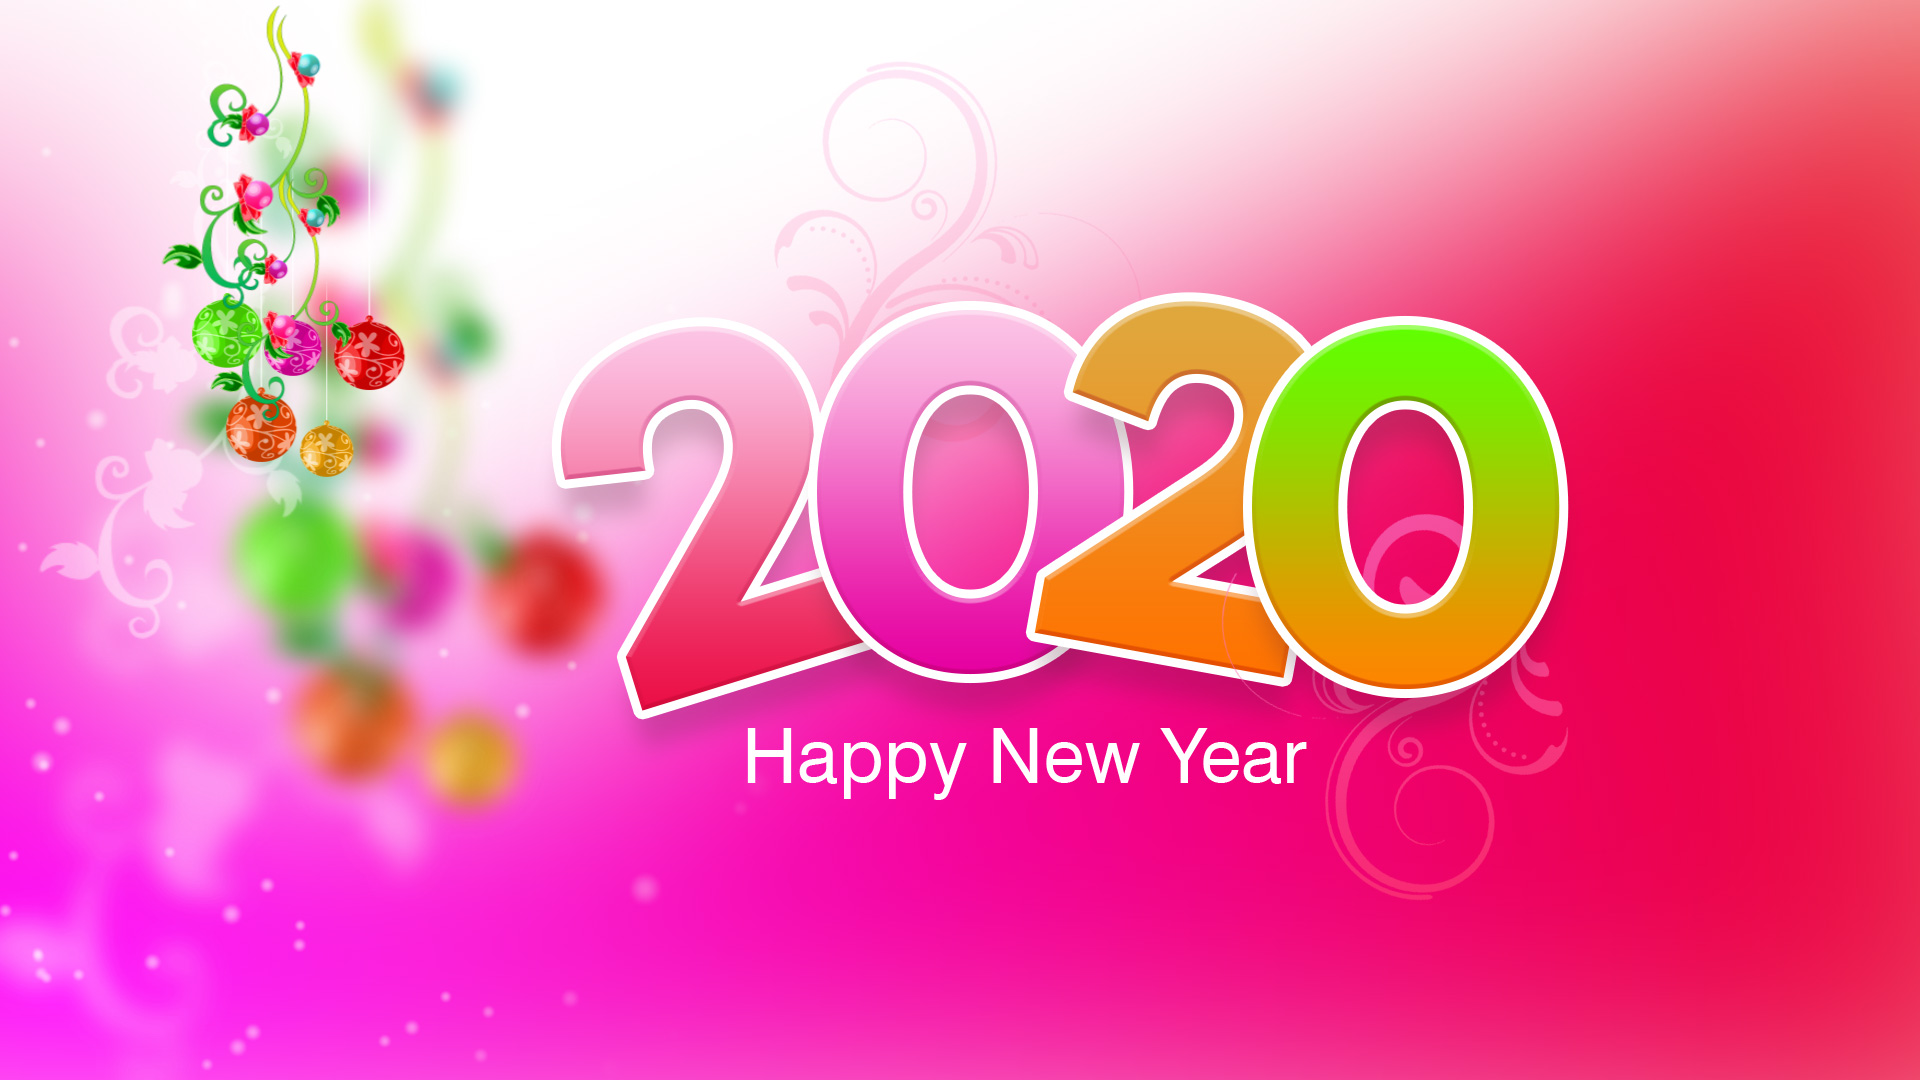 Happy New Year 2020 Cards with Greetings and Wishes for Family 1920x1080